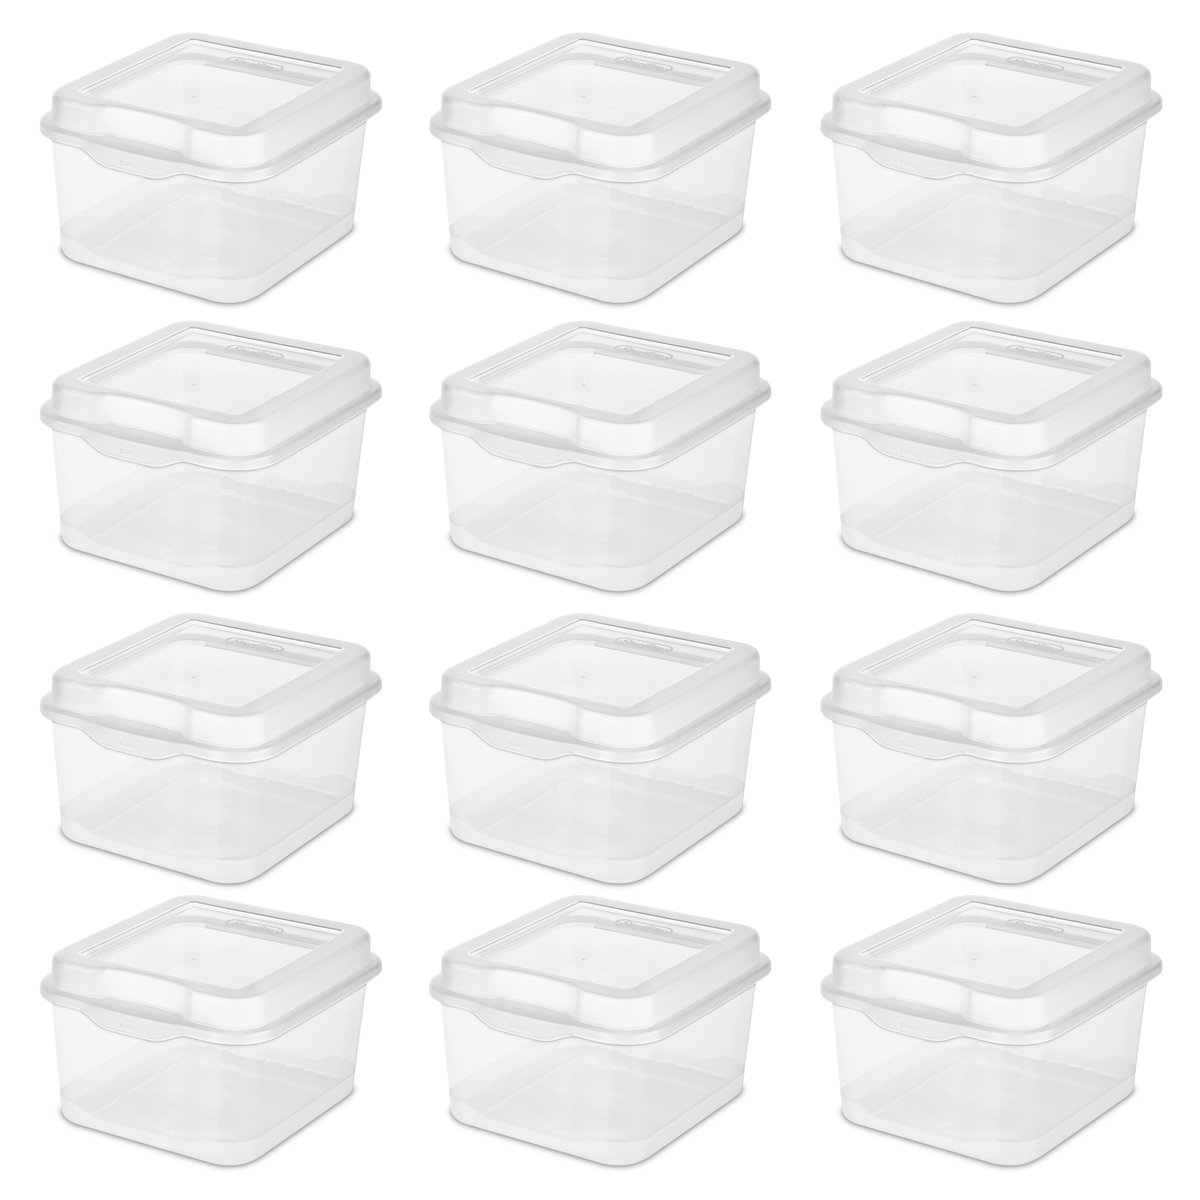 Sterilite 18038612 Flip Top, Clear, 12-Pack